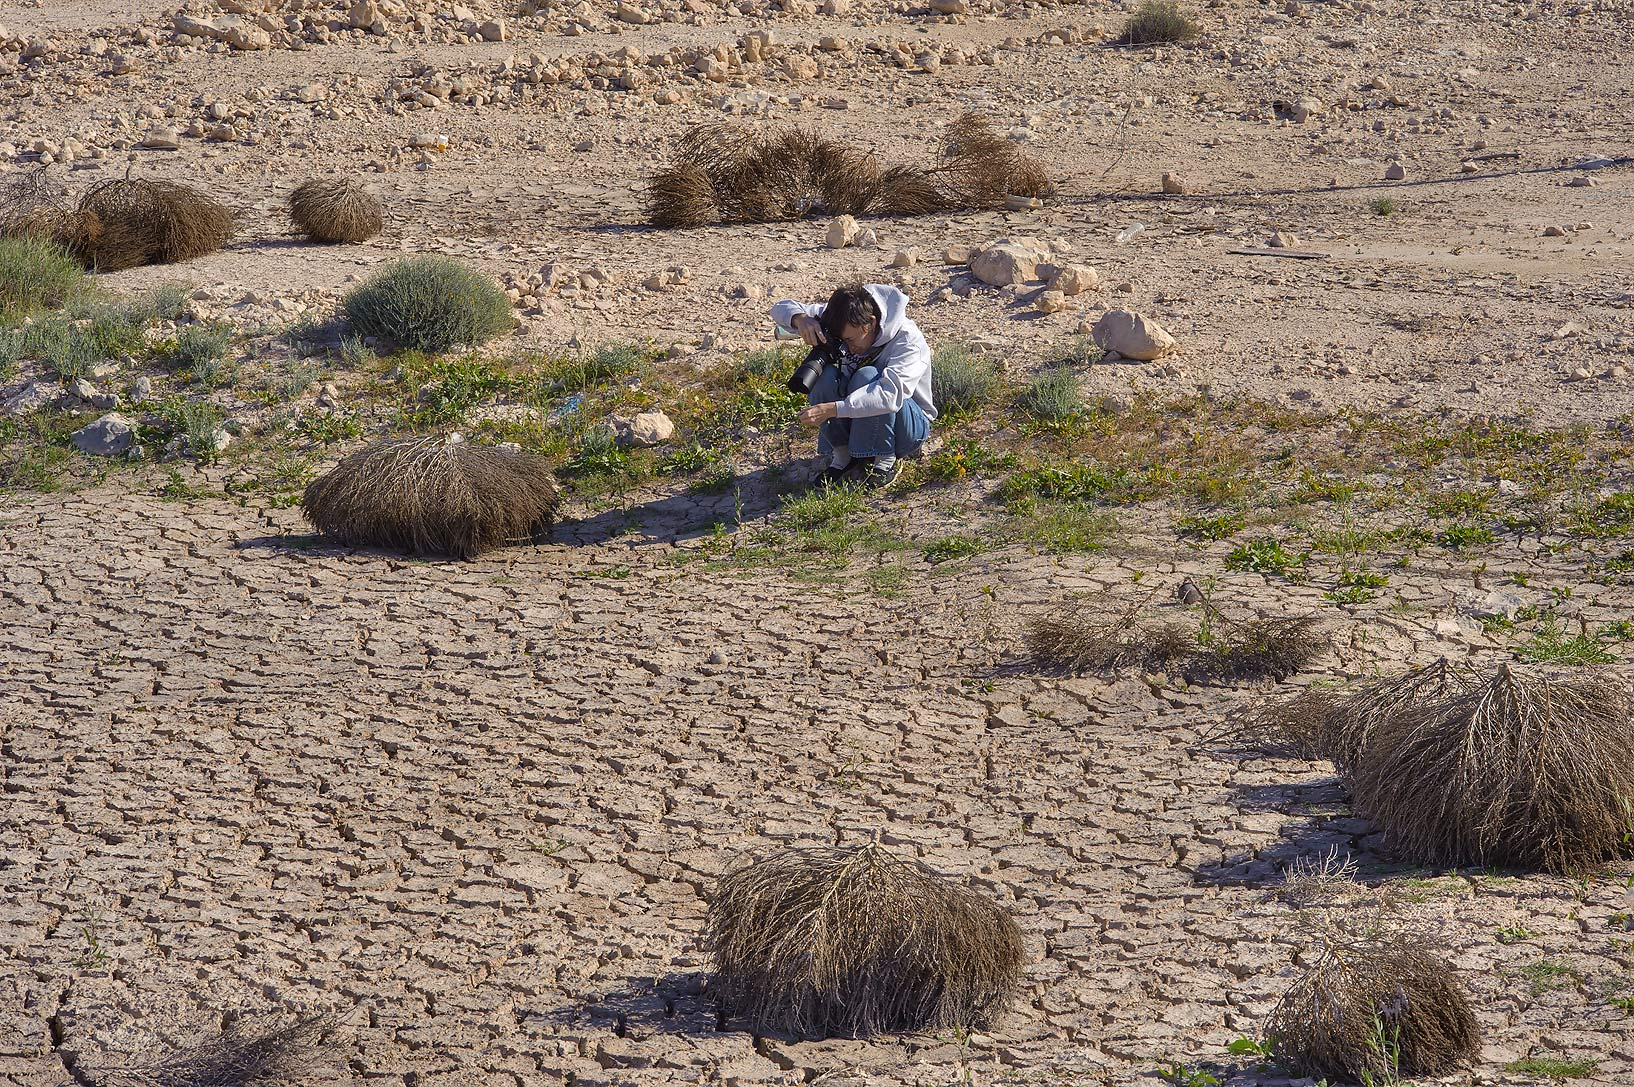 Some dry tumbleweed in a roadside depression of Abu Samra Rd. in southern Qatar